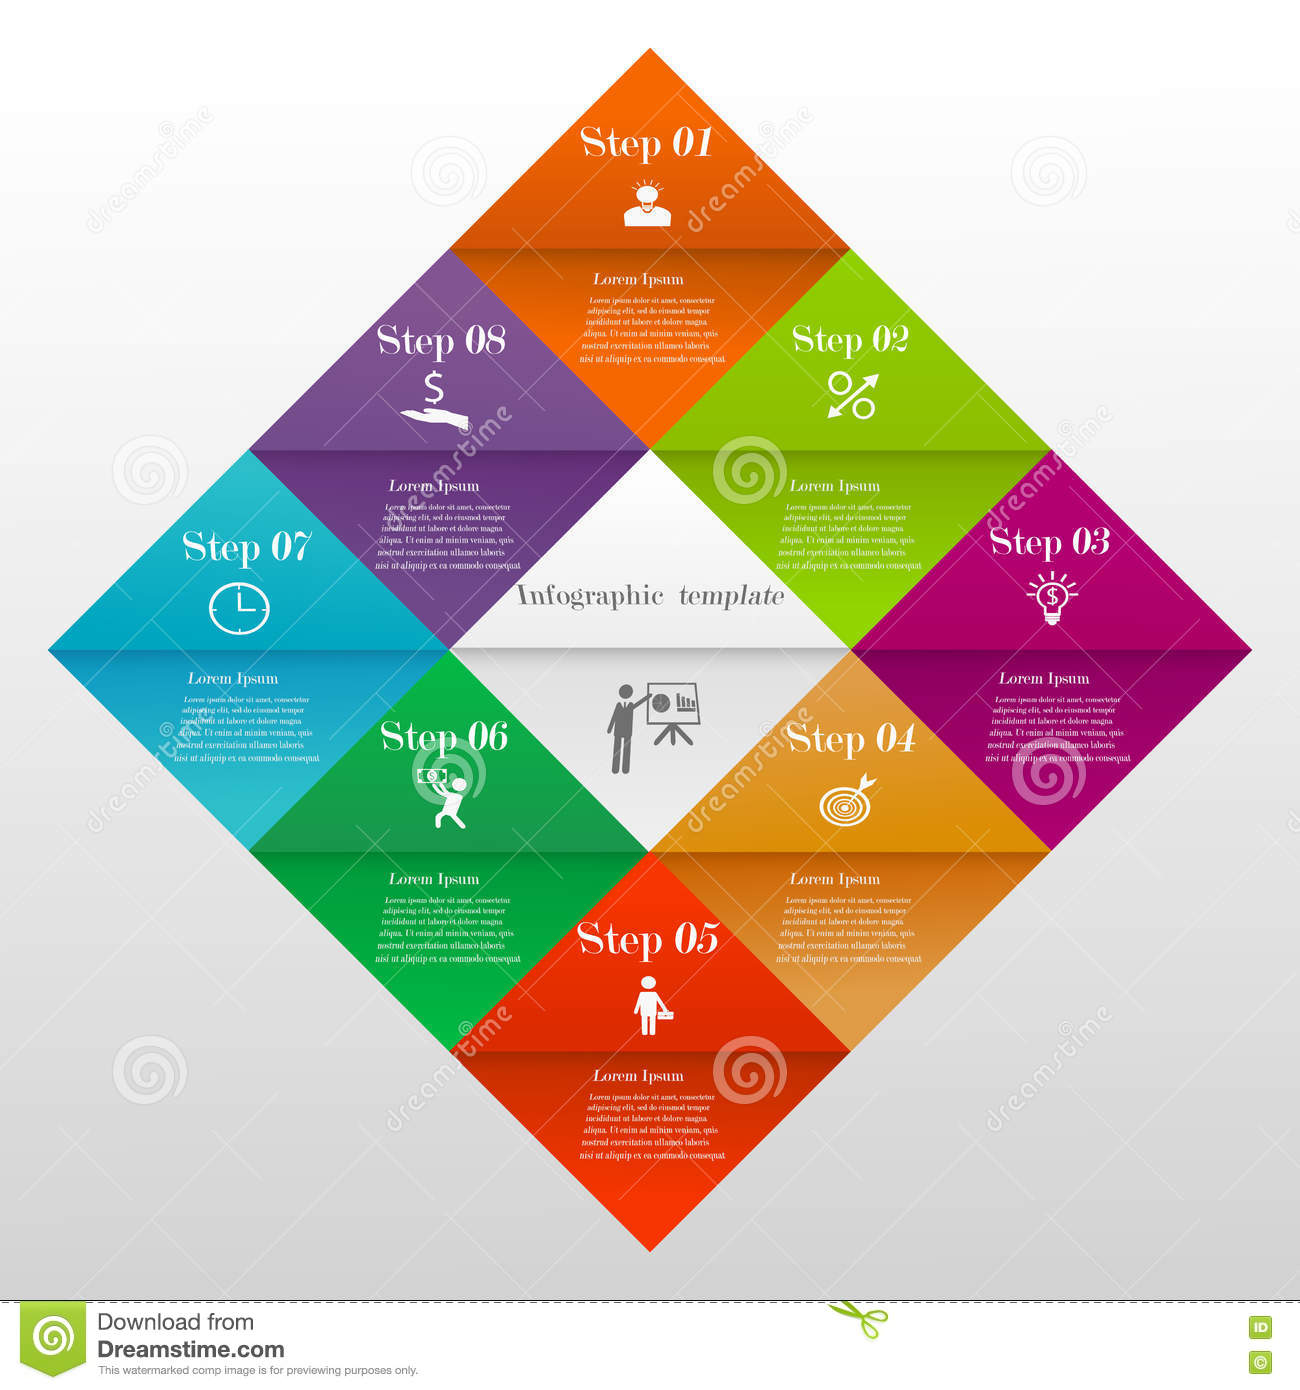 hight resolution of abstract 3d colorful divided diamond digital infographic template vector illustration can be used for workflow layout diagram number options web design